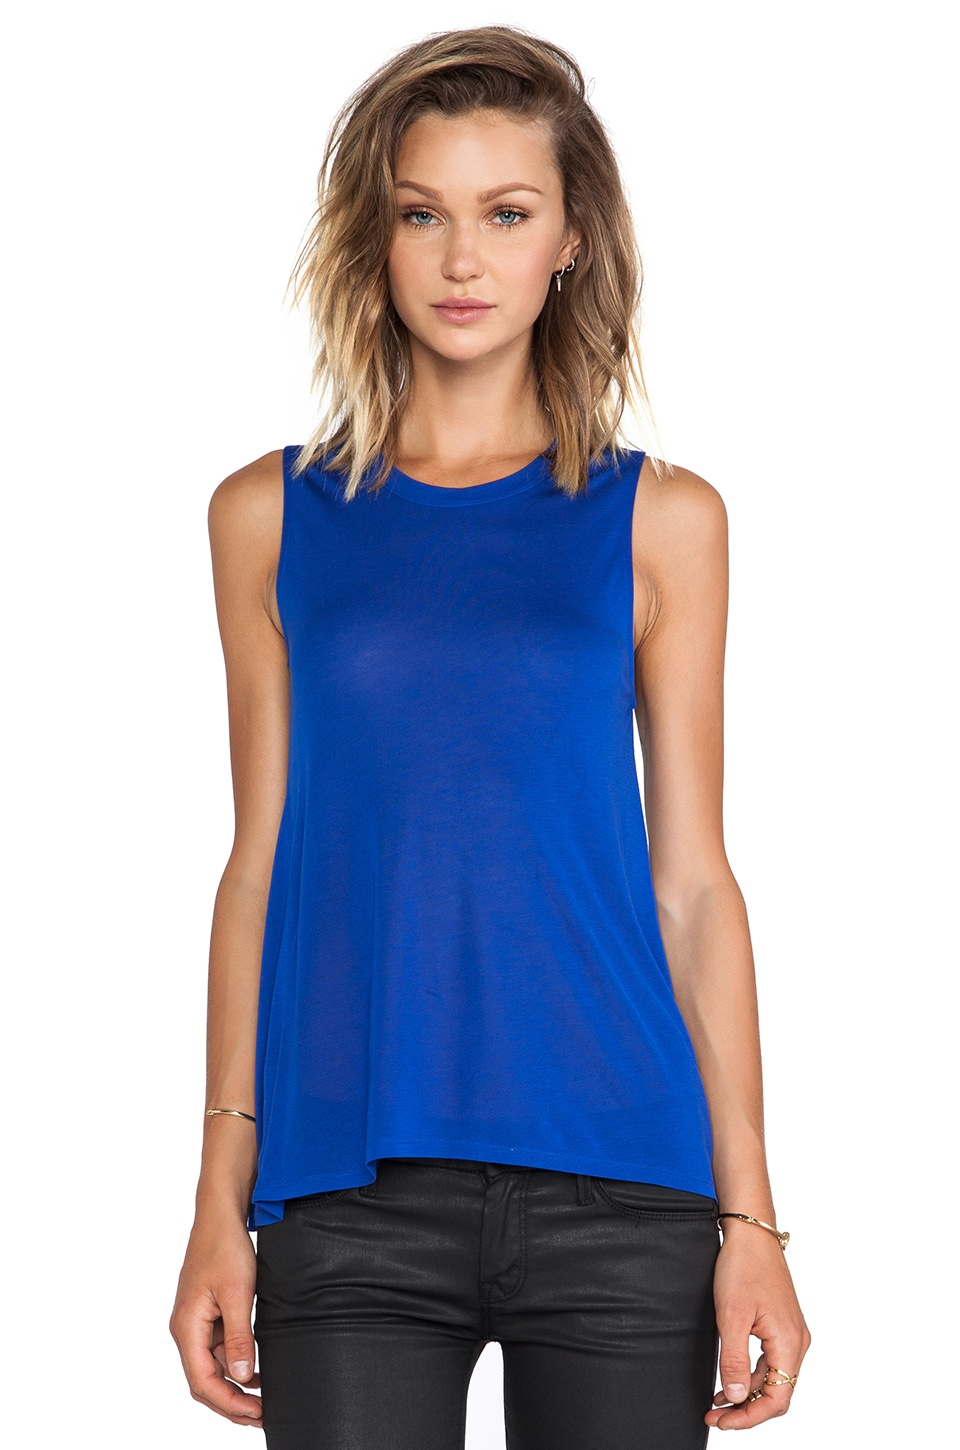 Bella Luxx High-Low Muscle Tank in Sapphire